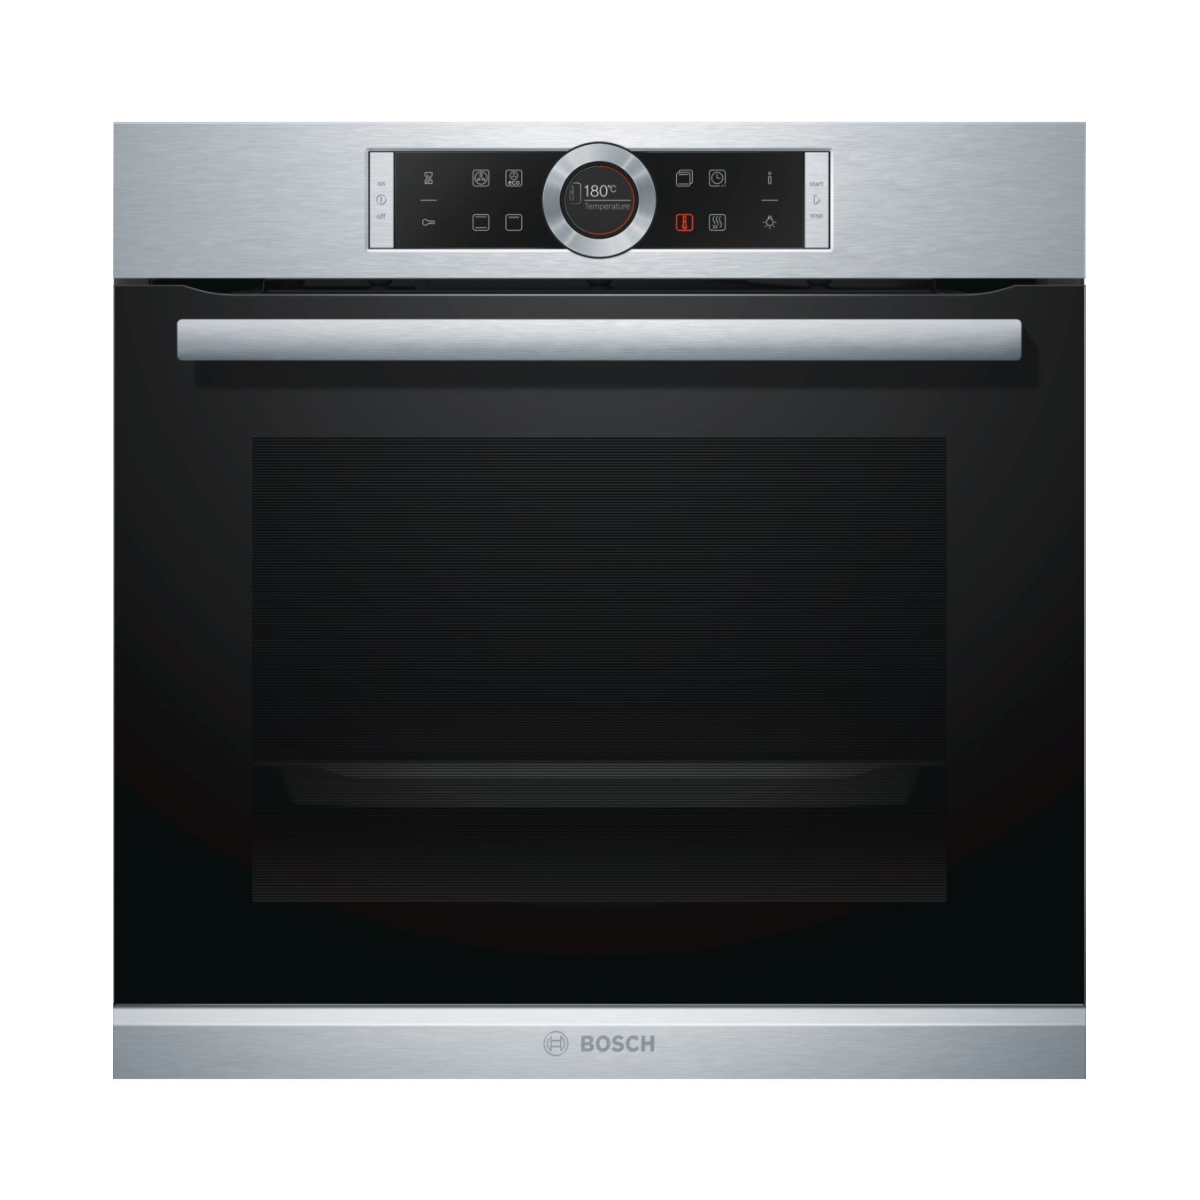 Bosch HBG633BS1A 60cm Serie 8 Electric Built-In Oven